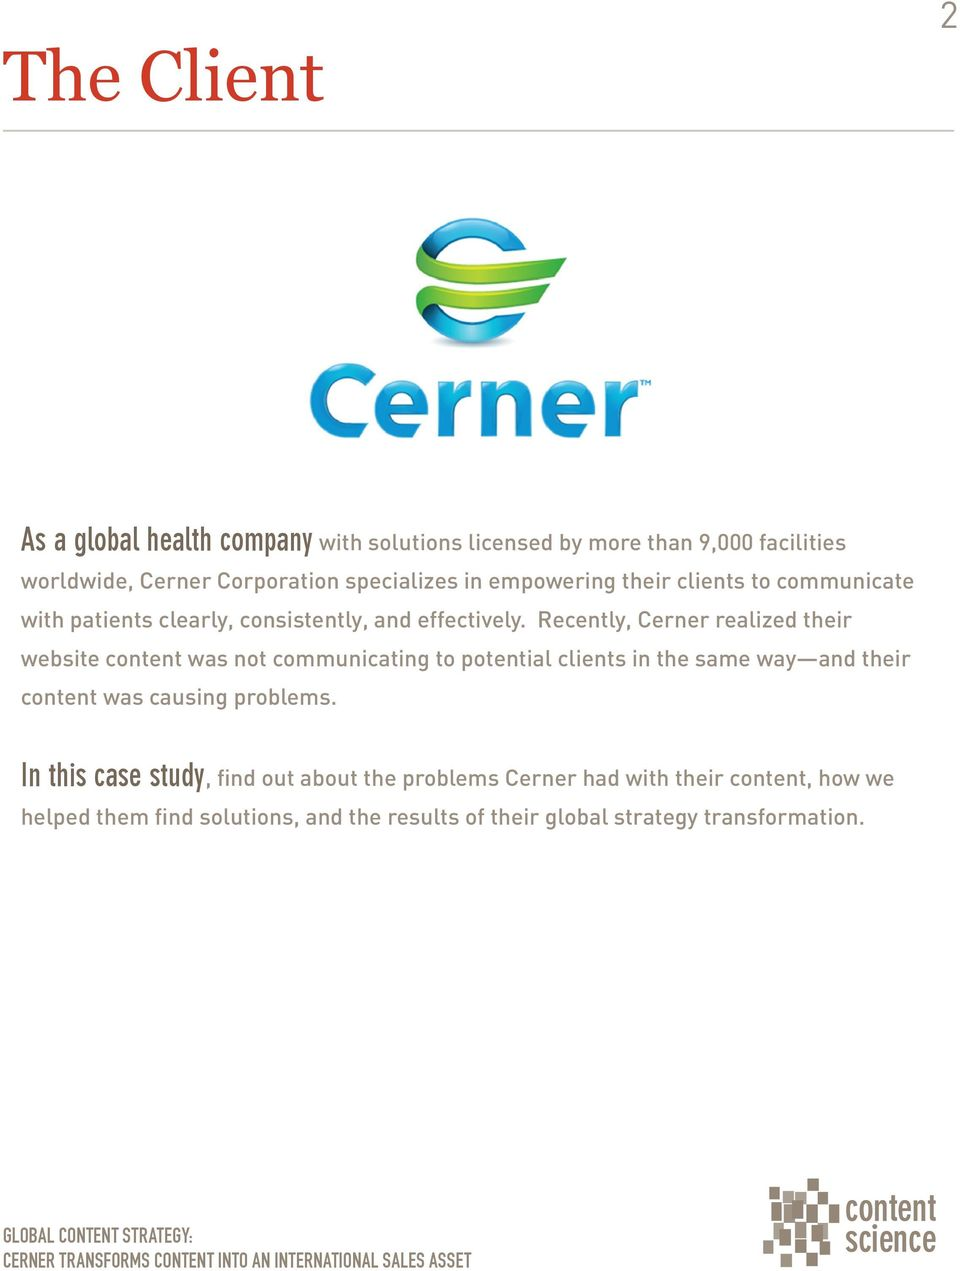 Recently, Cerner realized their website content was not communicating to potential clients in the same way and their content was causing